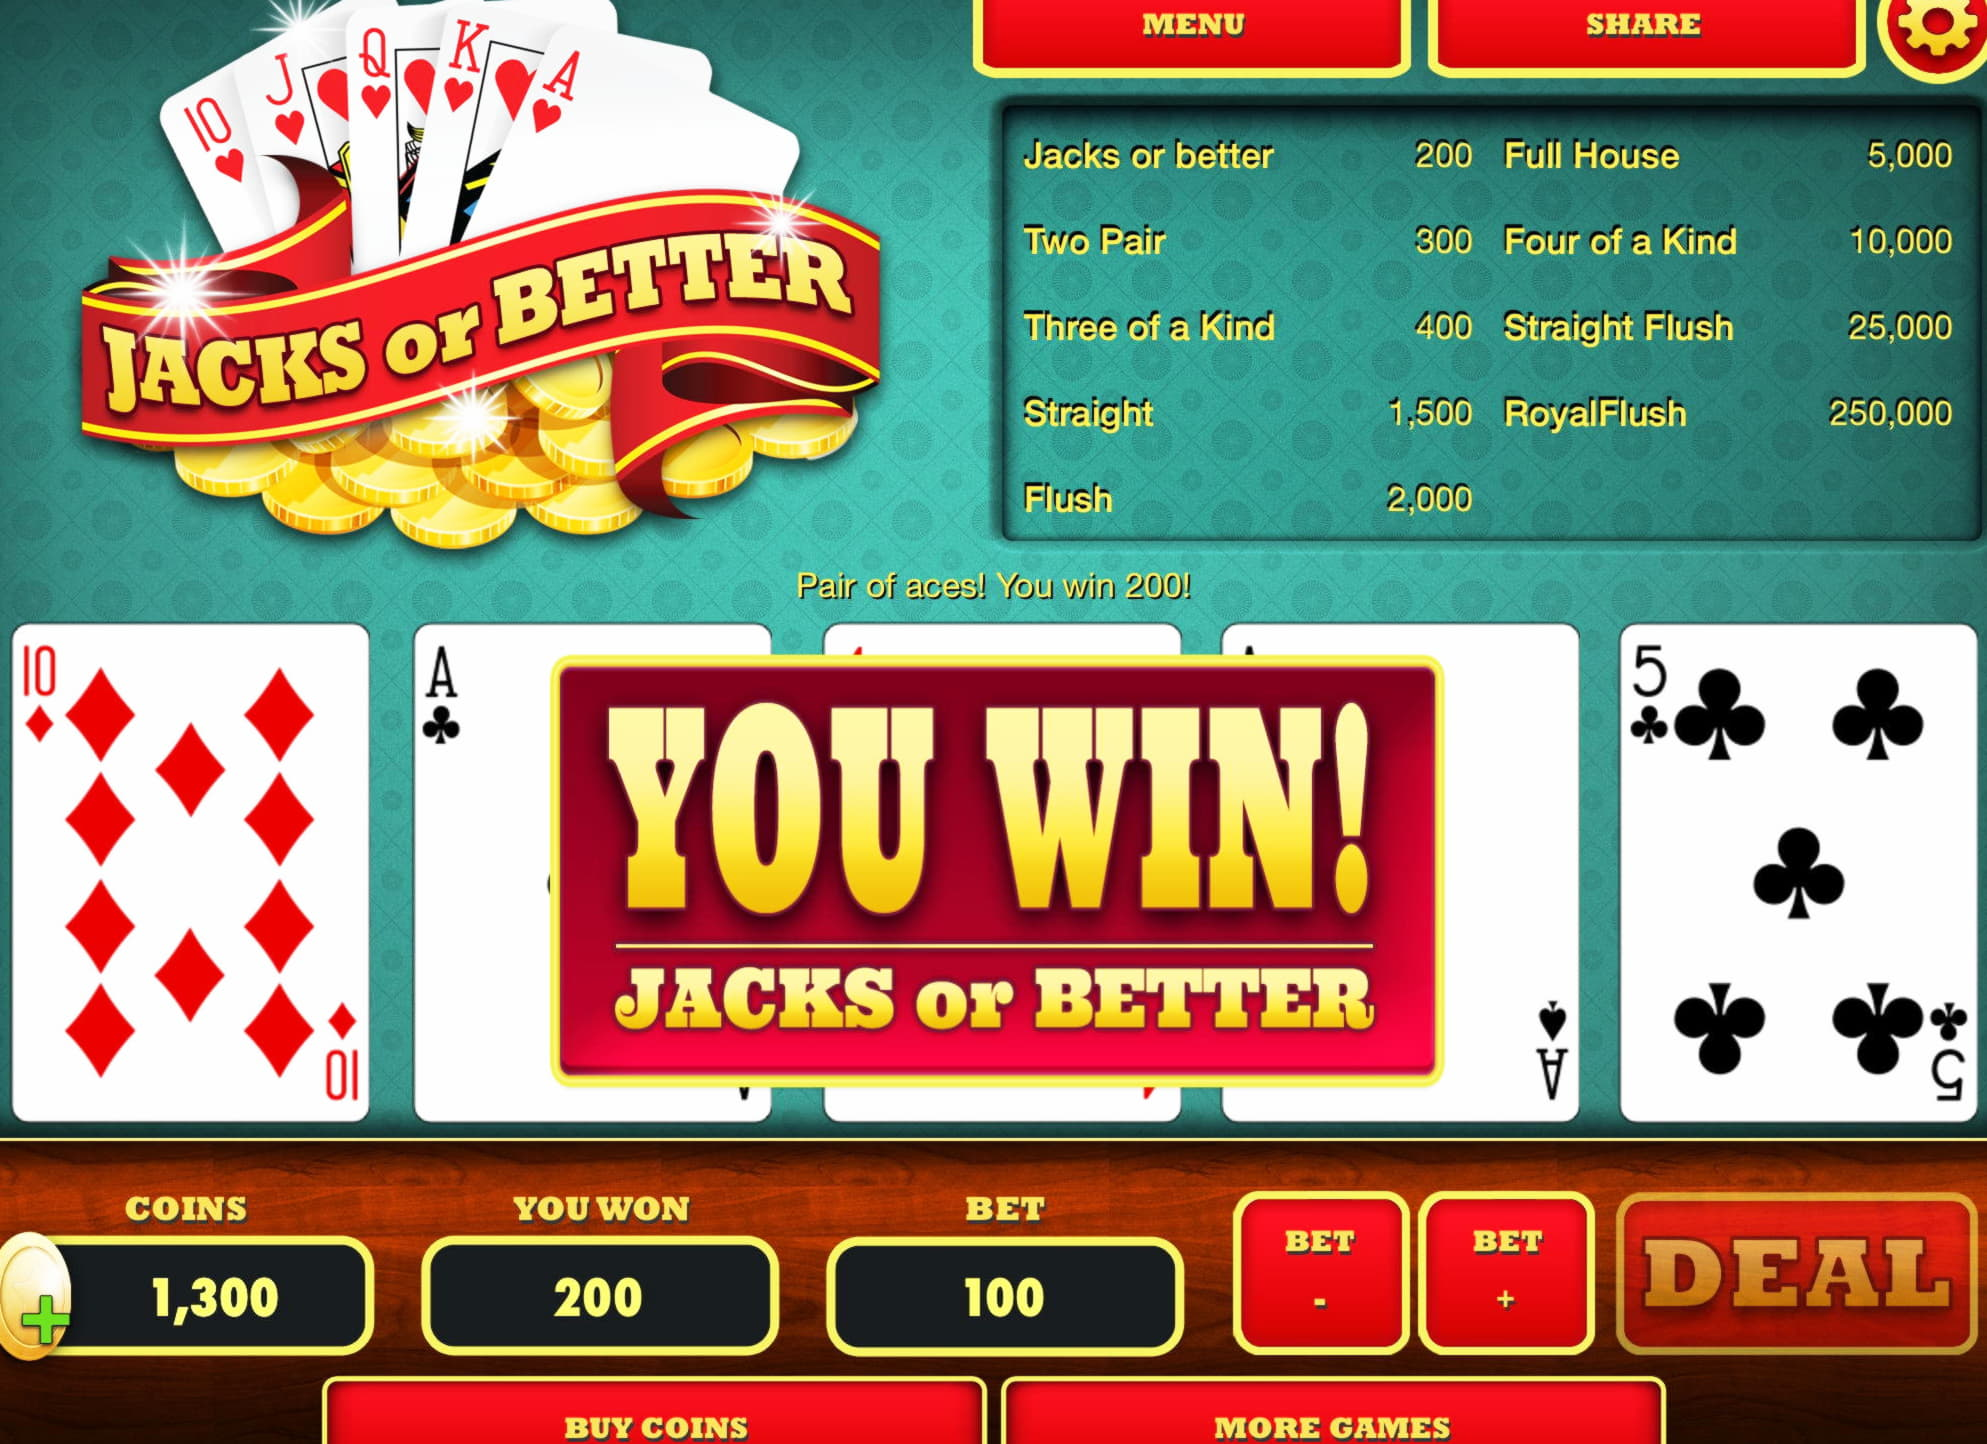 95 Free Spins right now at Betway Casino